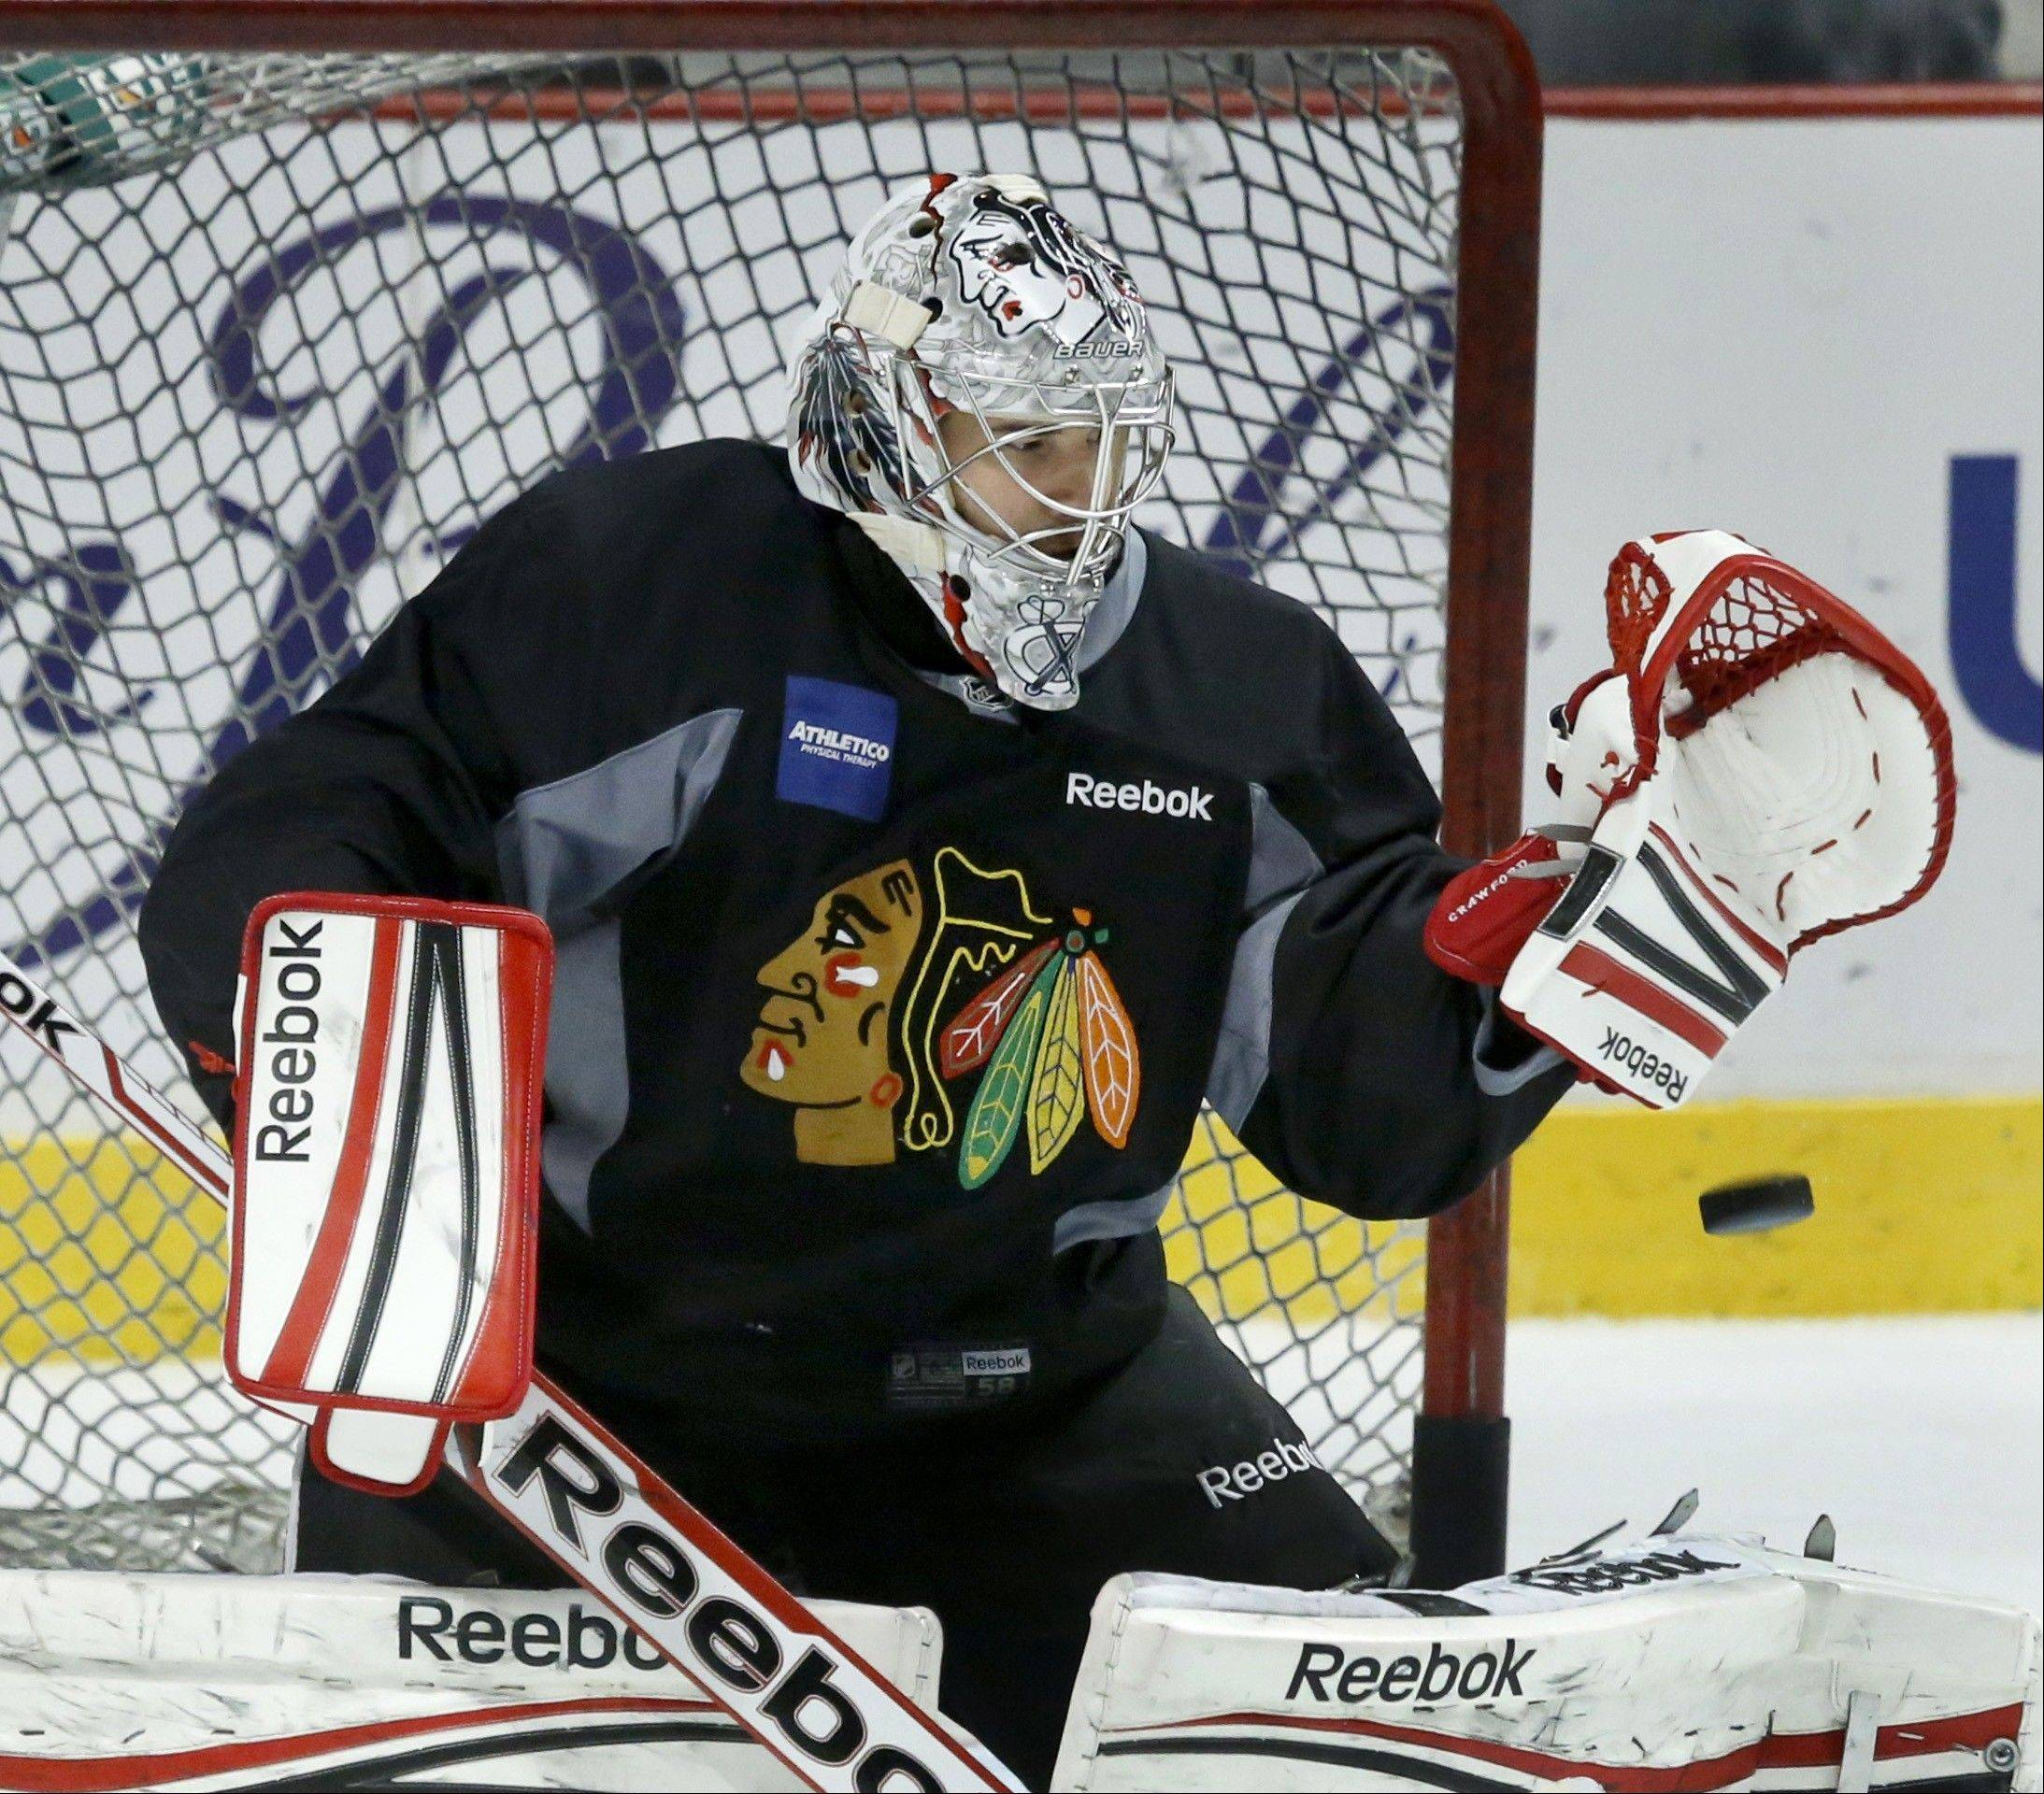 Hawks show some love for Crawford's glove